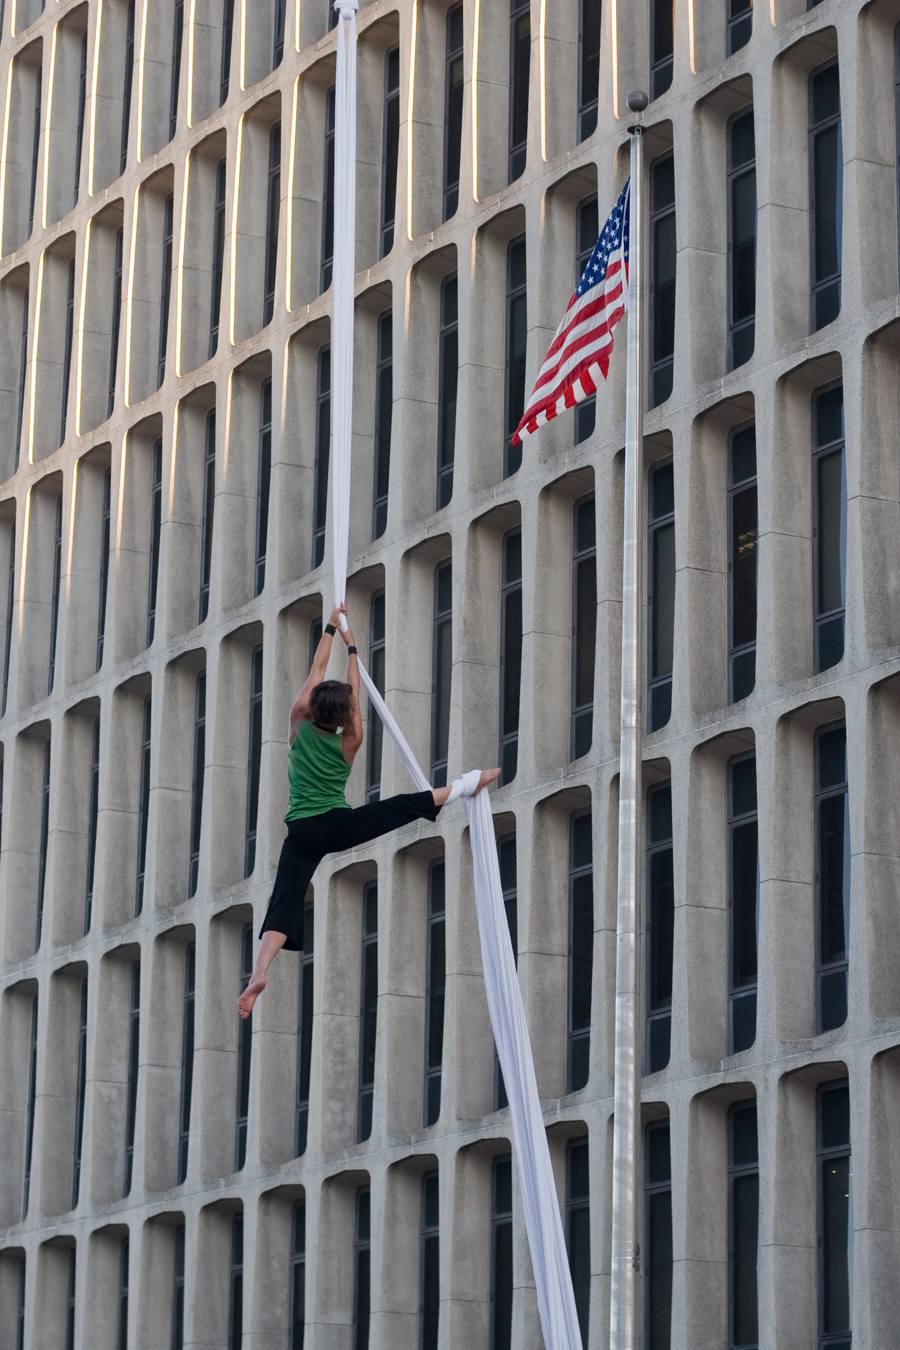 Alicia Carlin hanging on a cloth between buildings